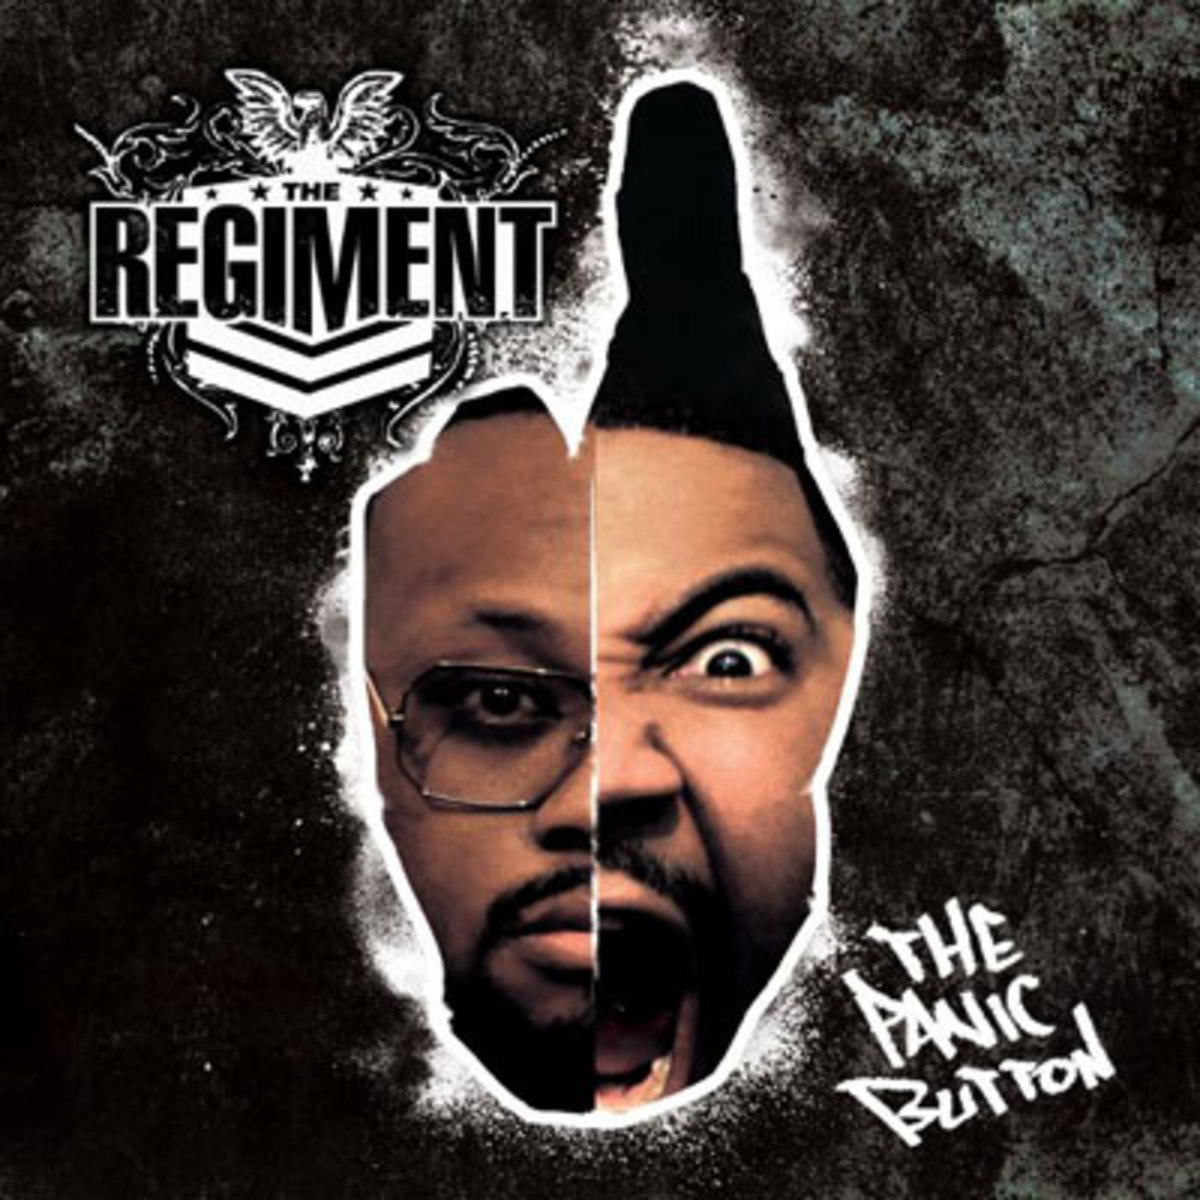 theregiment-thepanicbutton.jpg